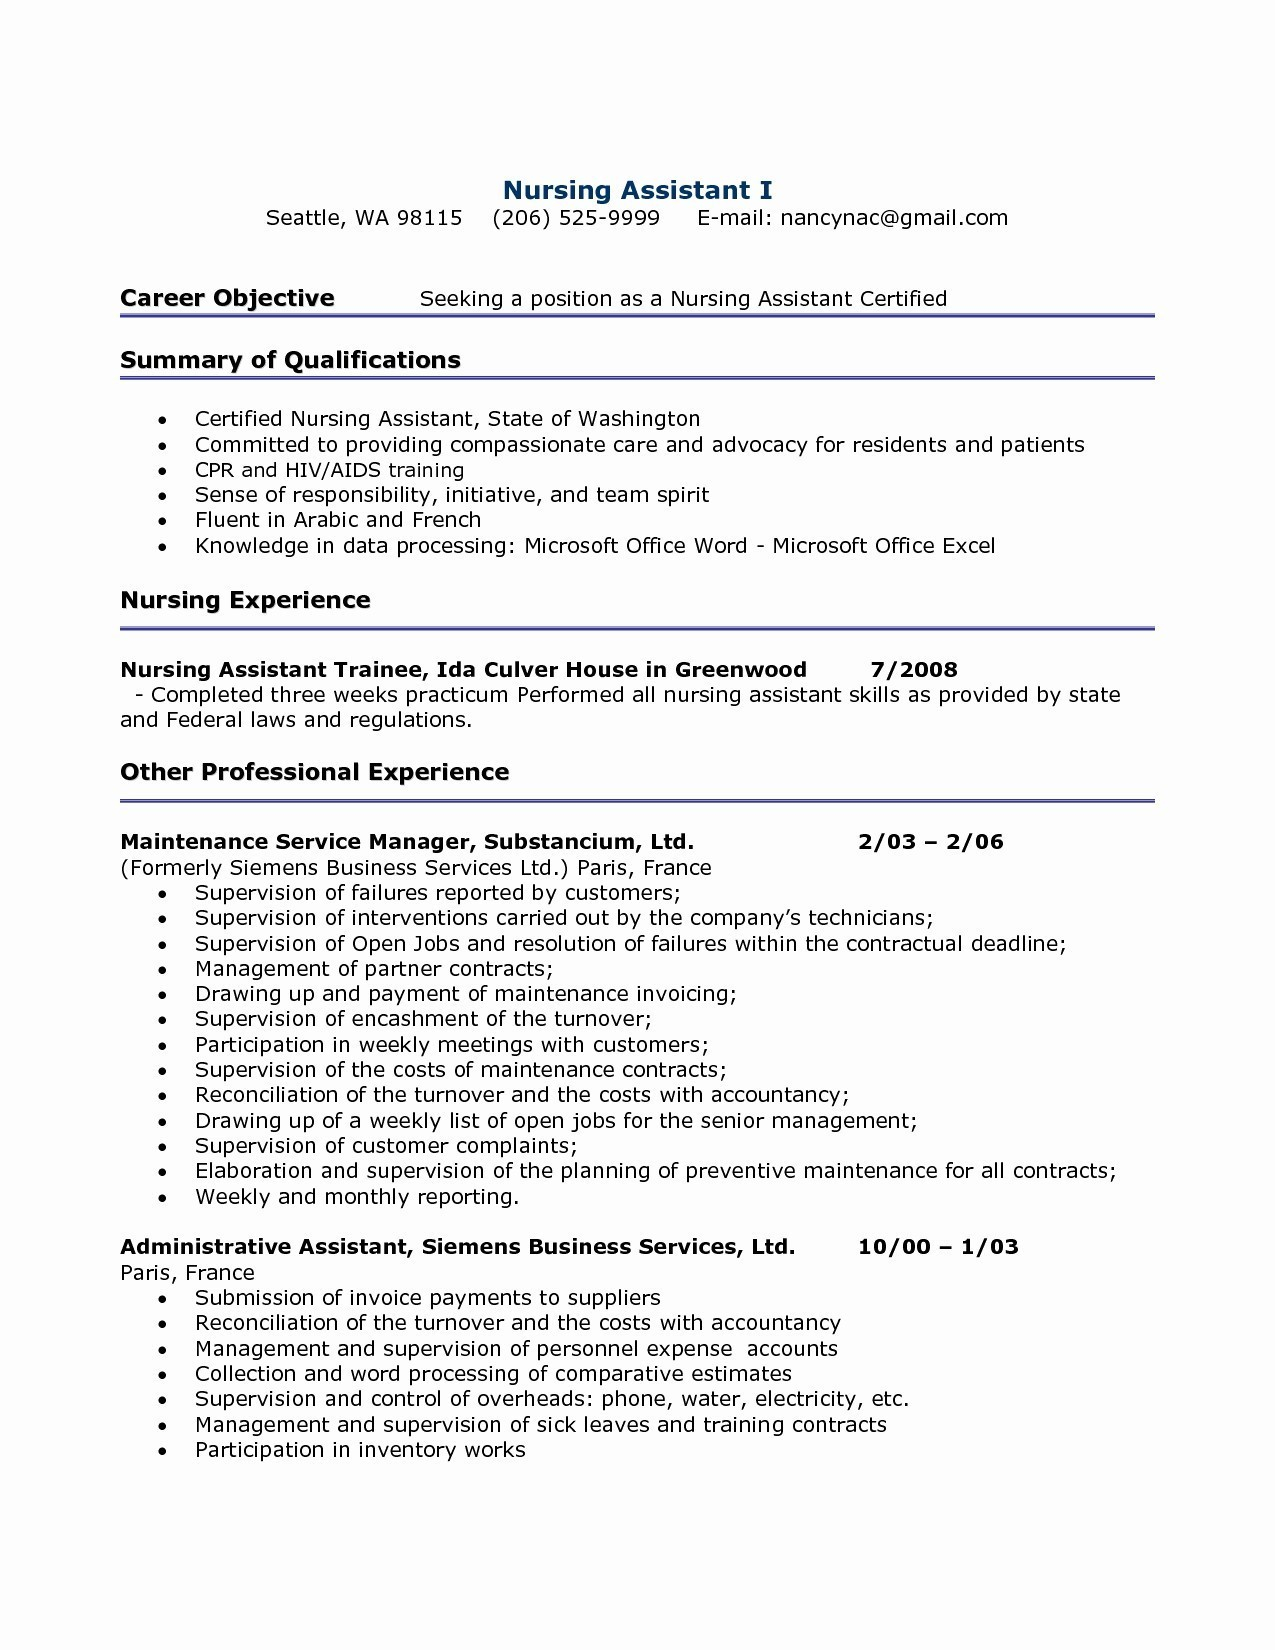 Nurse Resume Template Microsoft Word - Free Resume Templete New Lovely Pr Resume Template Elegant